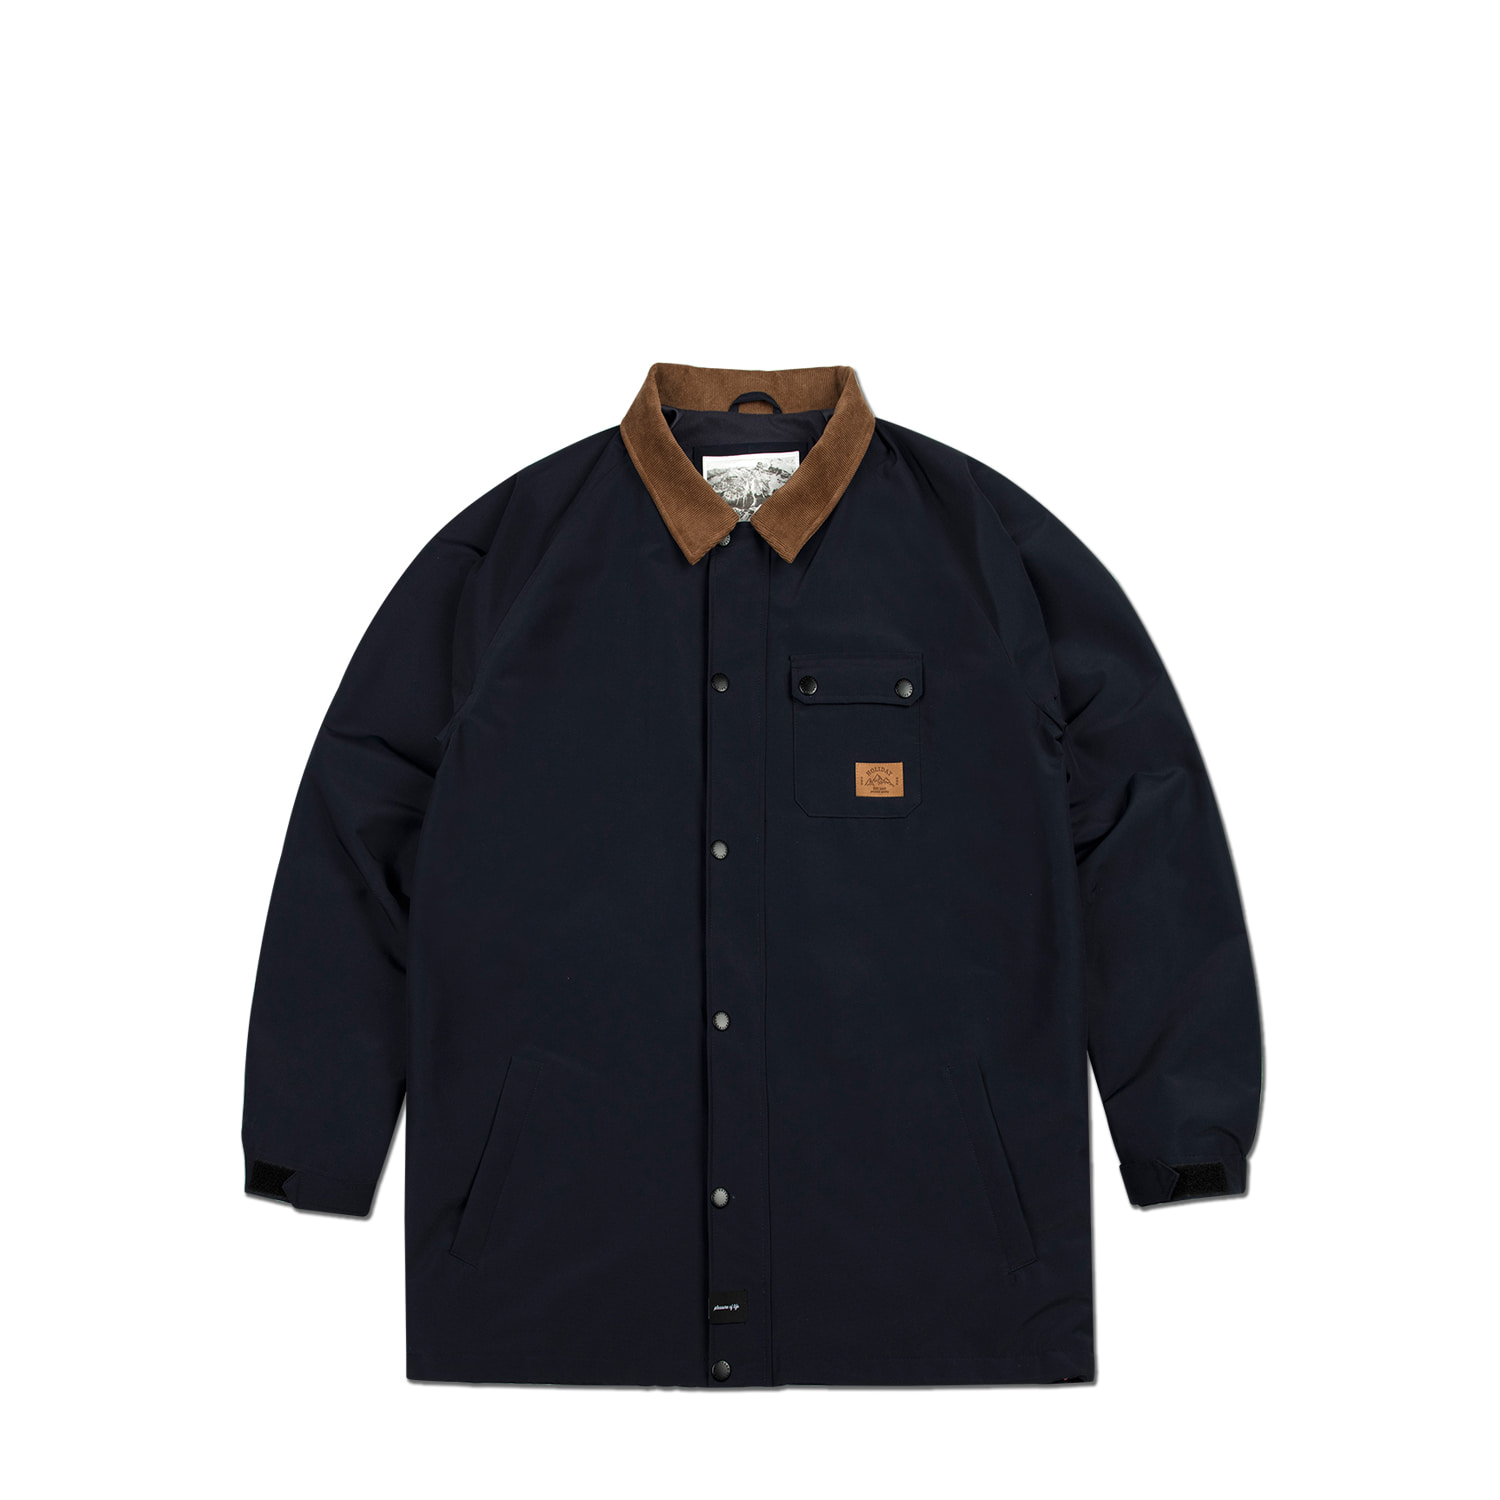 ALL DAY WORK jacket - navyHOLIDAY OUTERWEAR